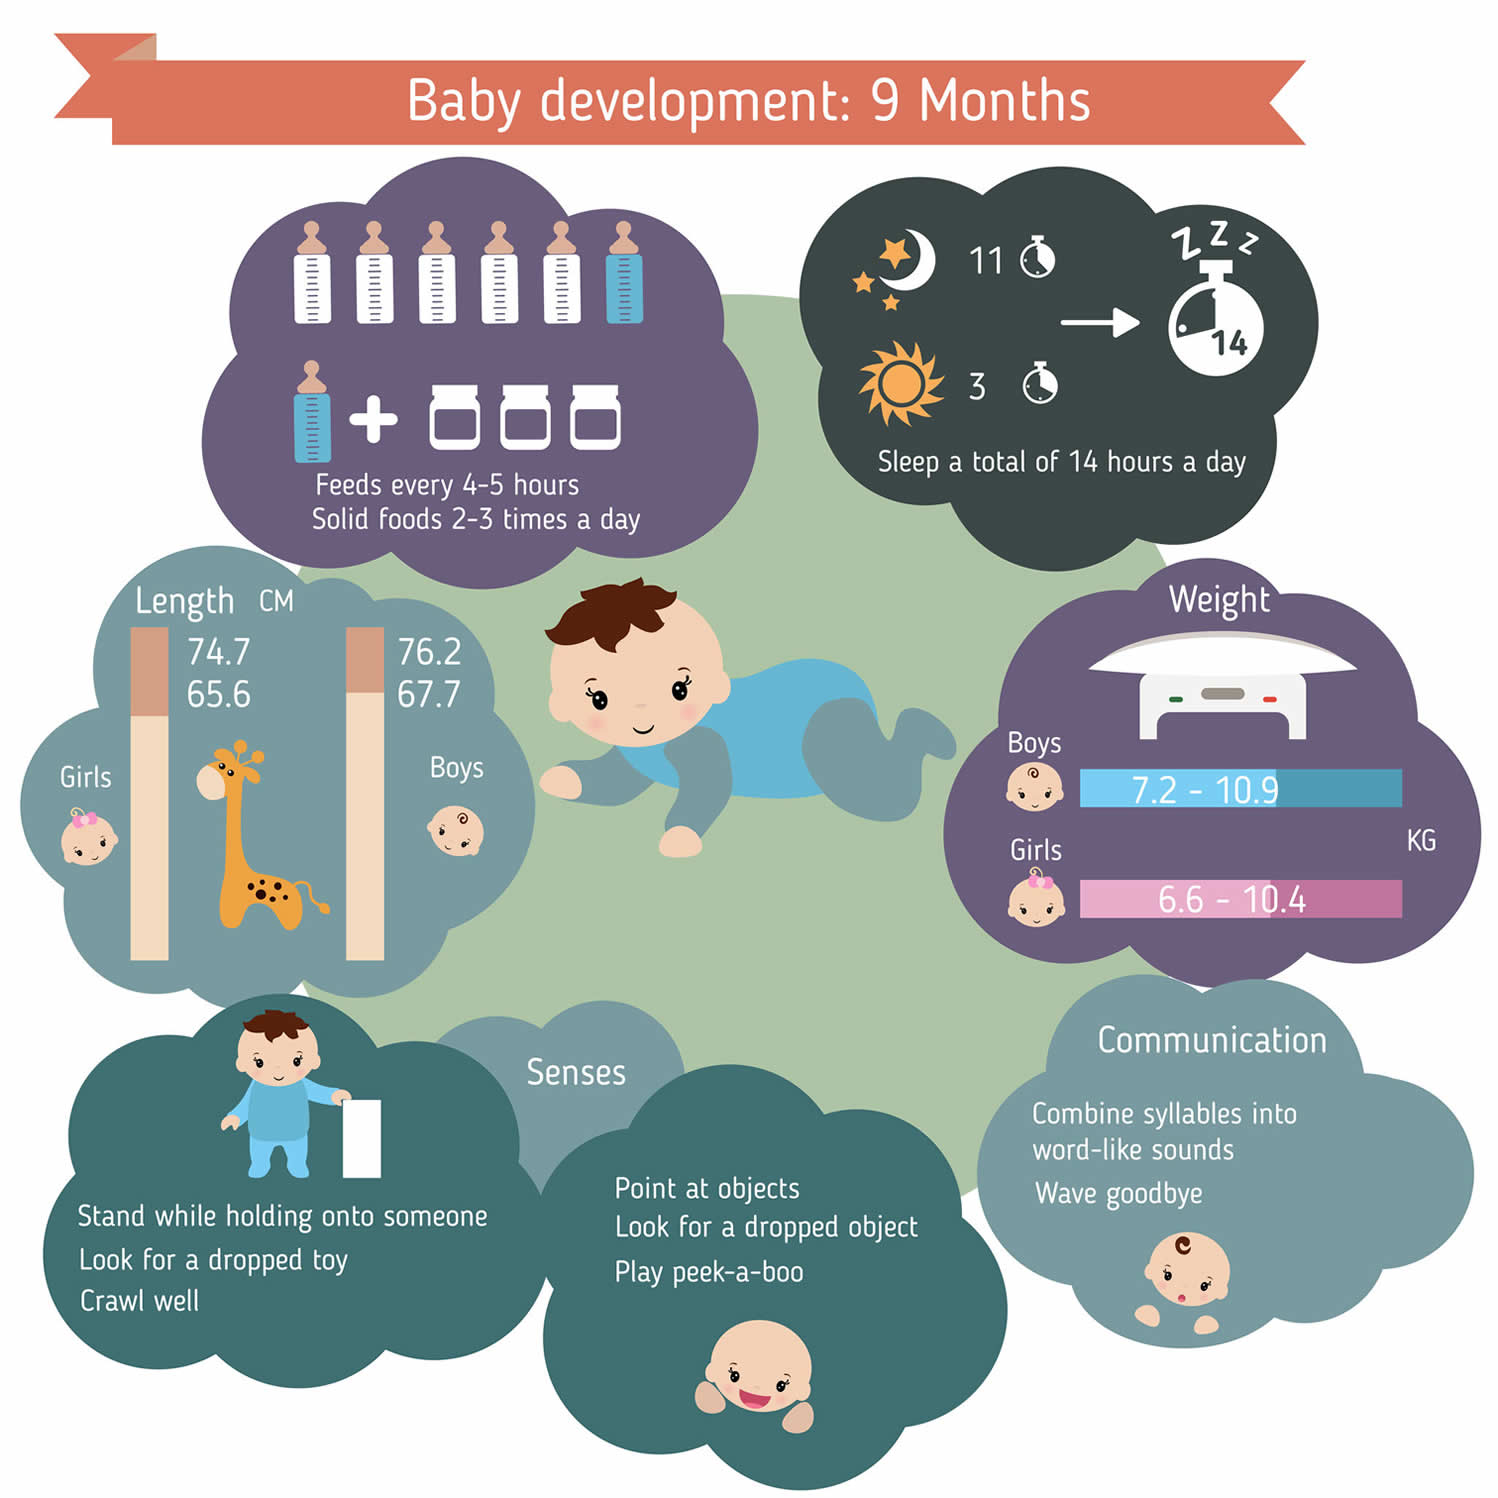 9 month infant care guide